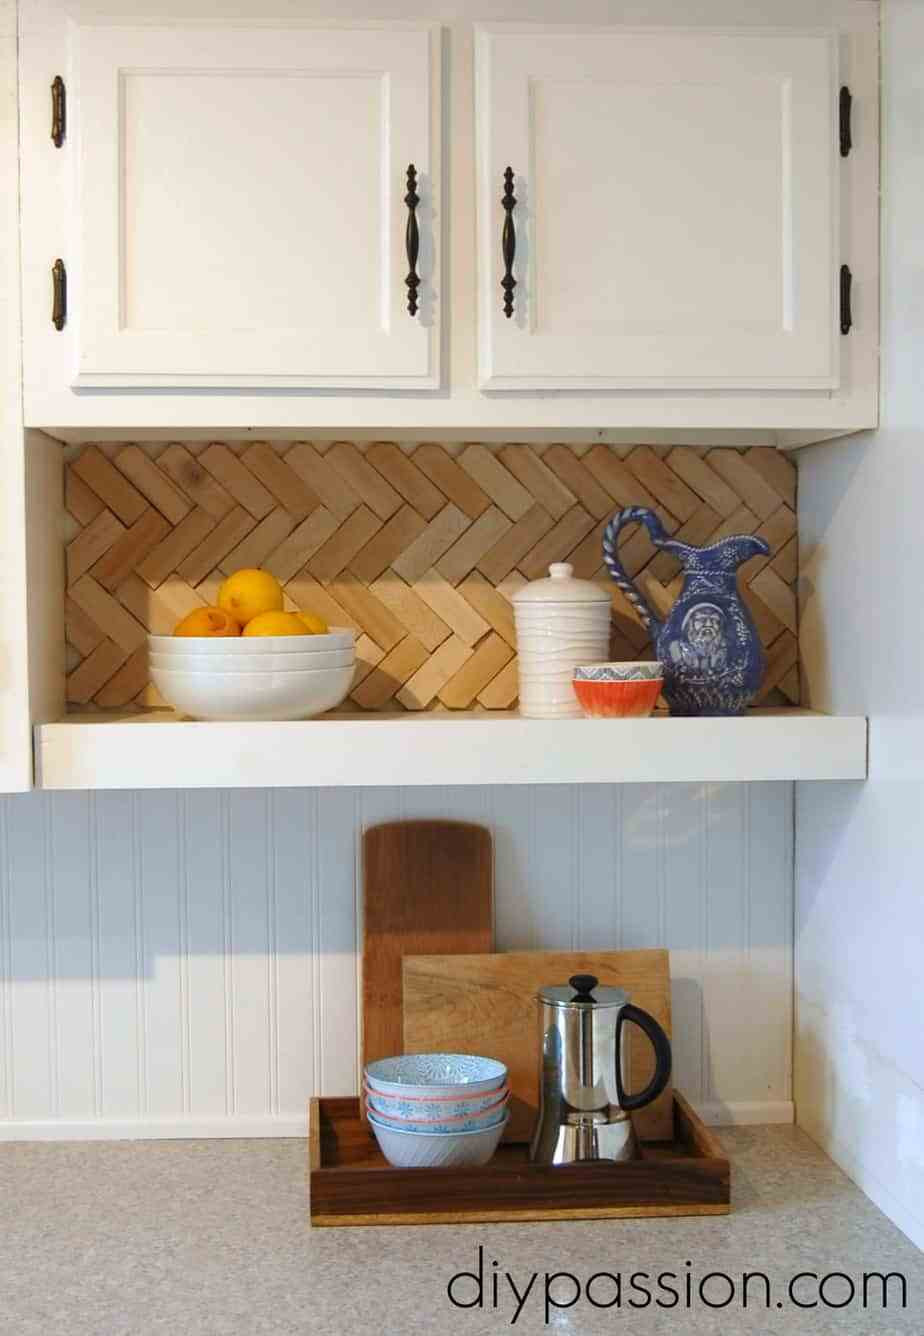 Best ideas about Wood Backsplash DIY . Save or Pin Easy and inexpensive back splash ideas Now.